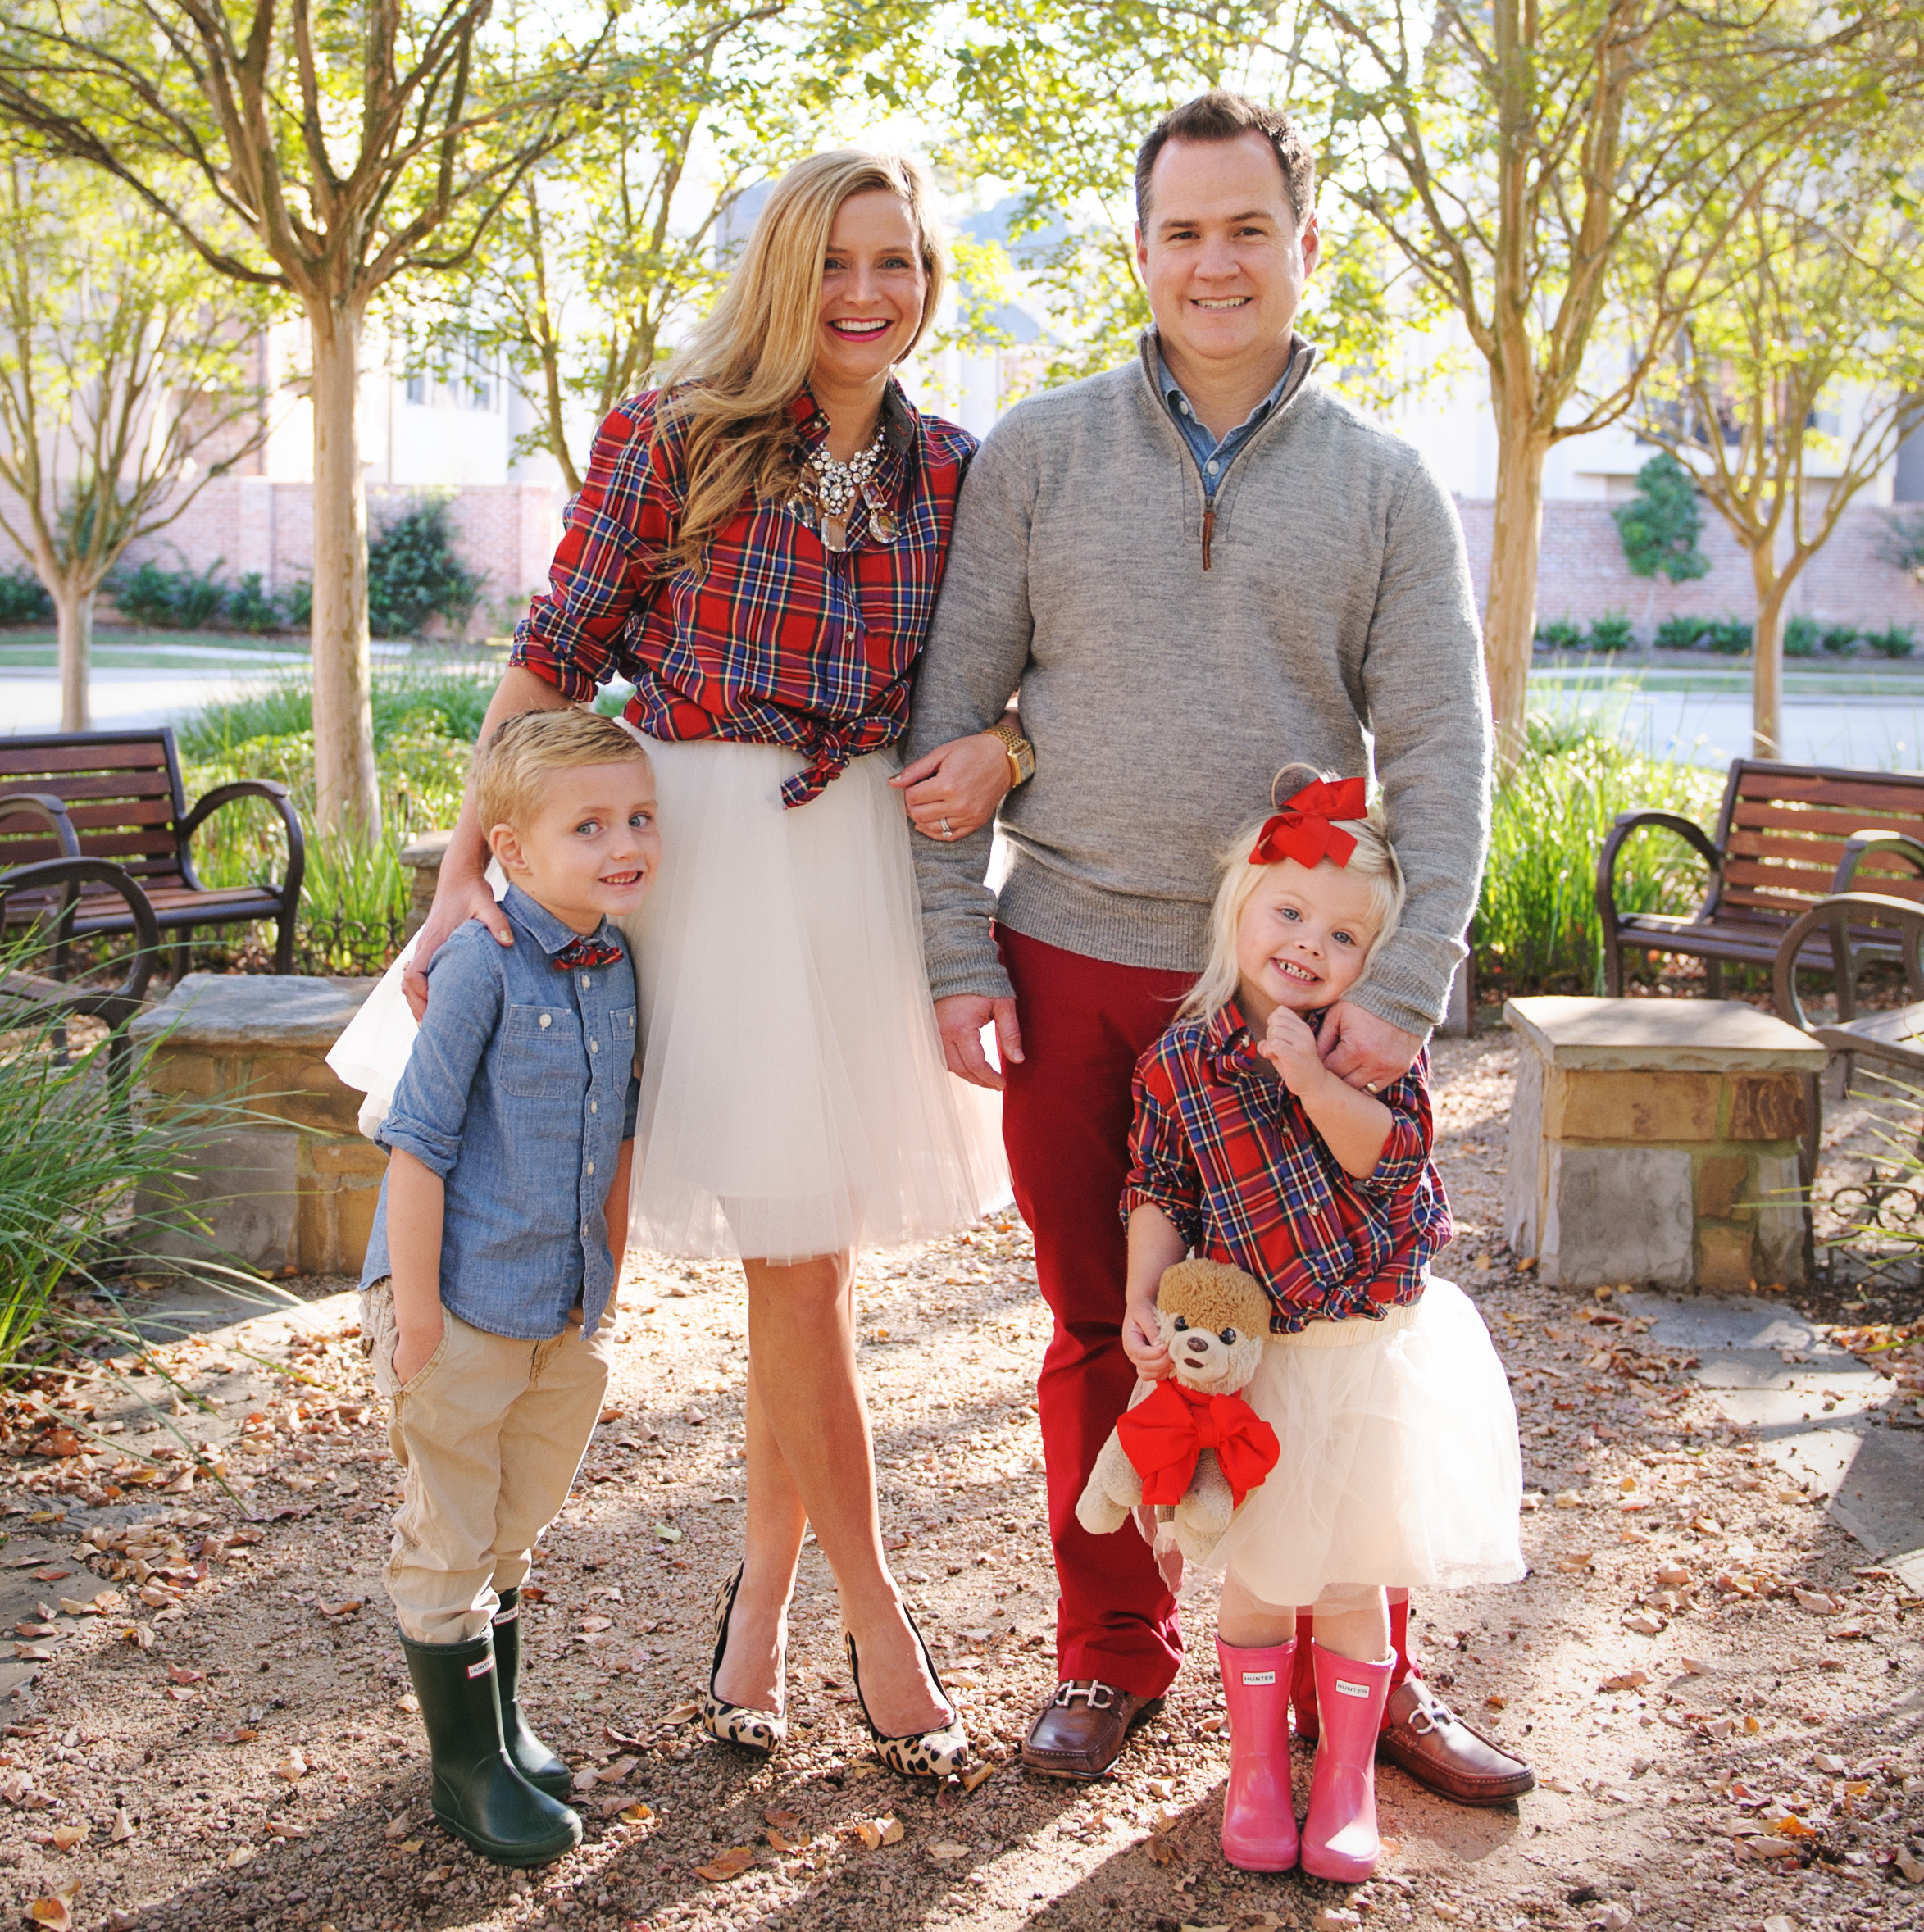 6 Families Who Nailed Color Coordinated Portraits | HuffPost Life